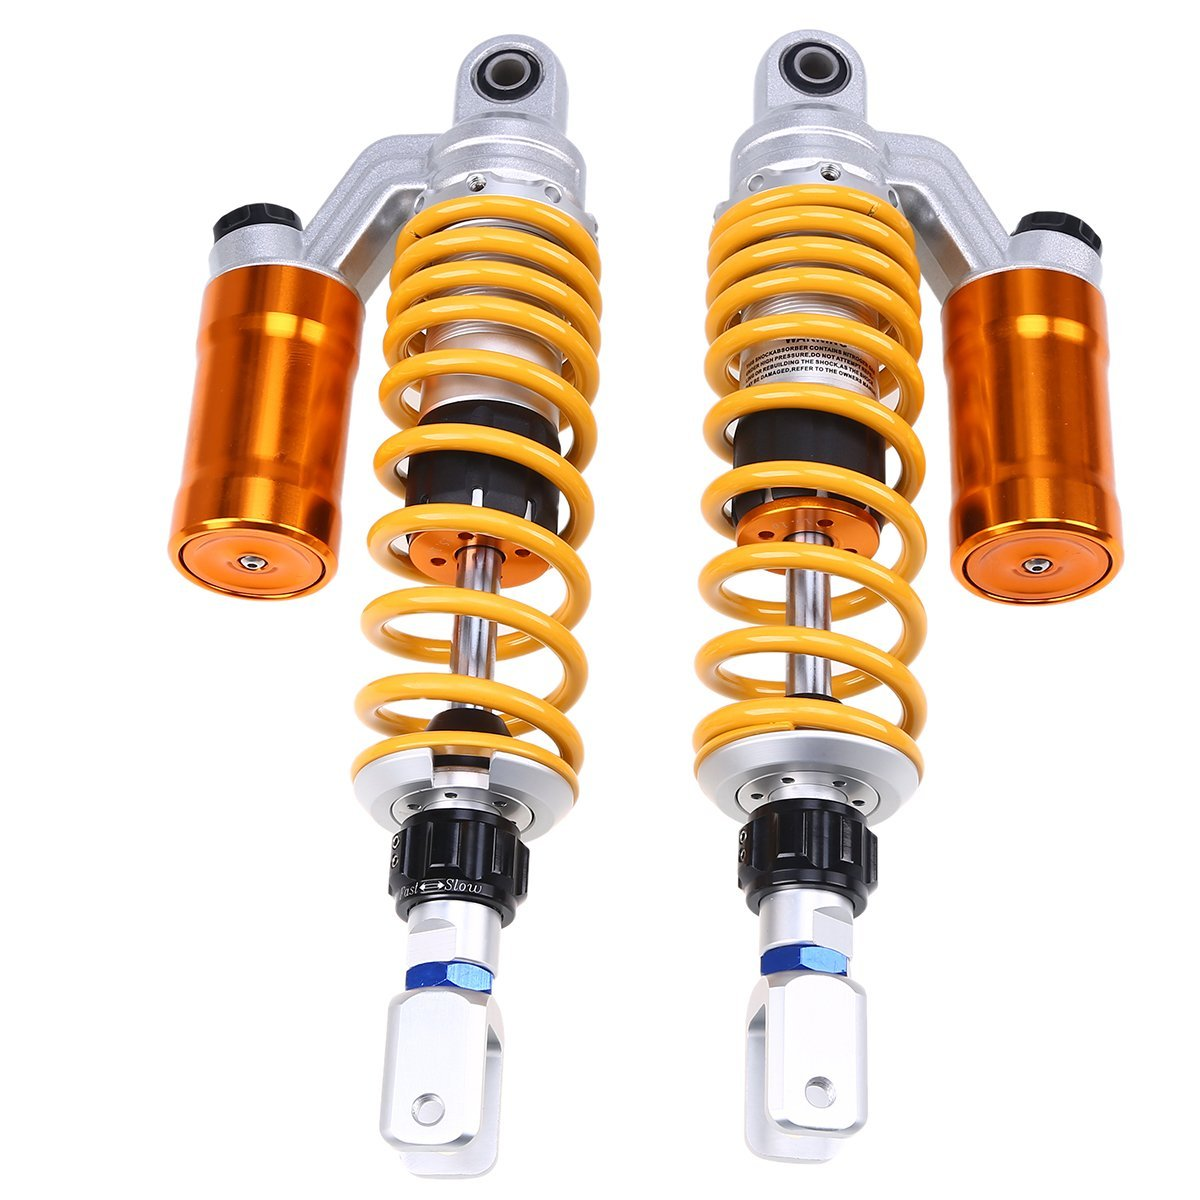 Cheap 13 Motorcycle Shocks, find 13 Motorcycle Shocks deals on line